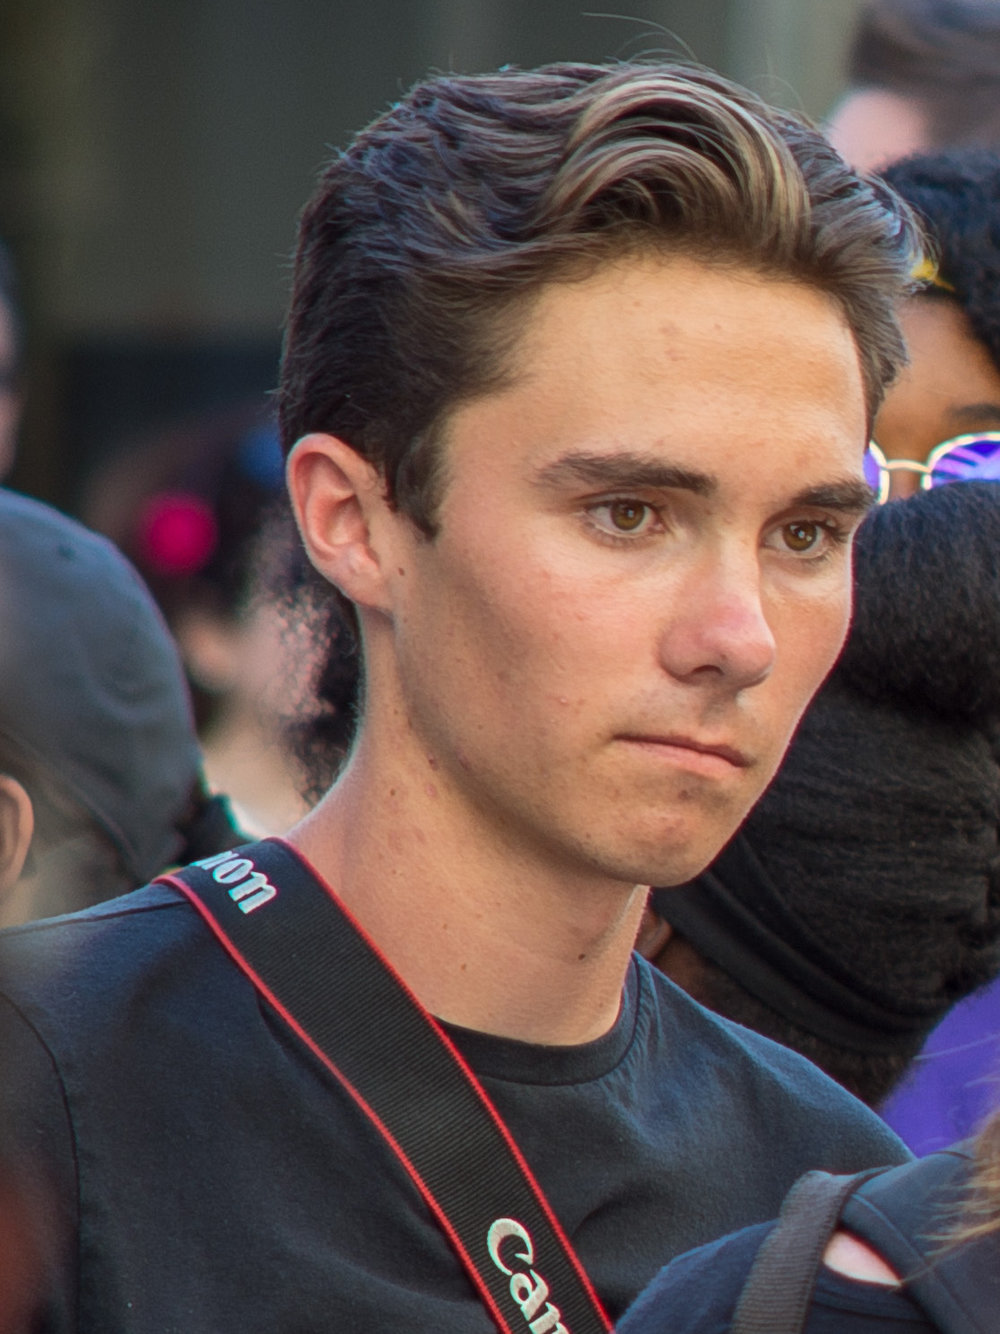 David_Hogg_at_the_Rally_to_Support_Firearm_Safety_Legislation_in_Fort_Lauderdale.jpg